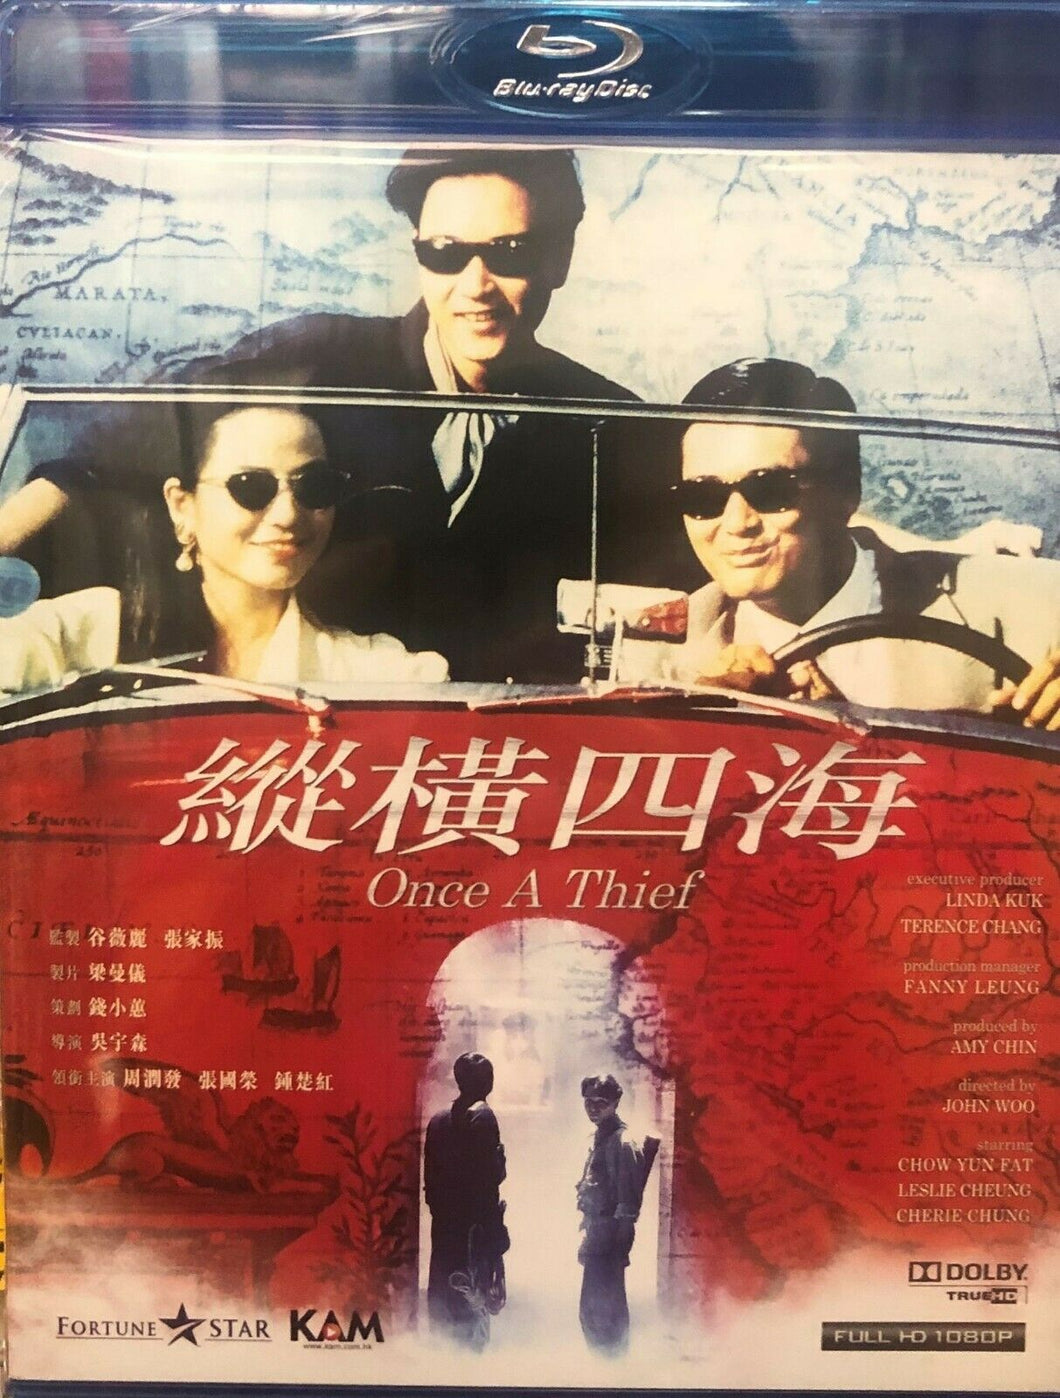 Once a Thief 縱橫四海 1991 JOHN WOO (H.K Movie) BLU-RAY with English Sub (Region A)